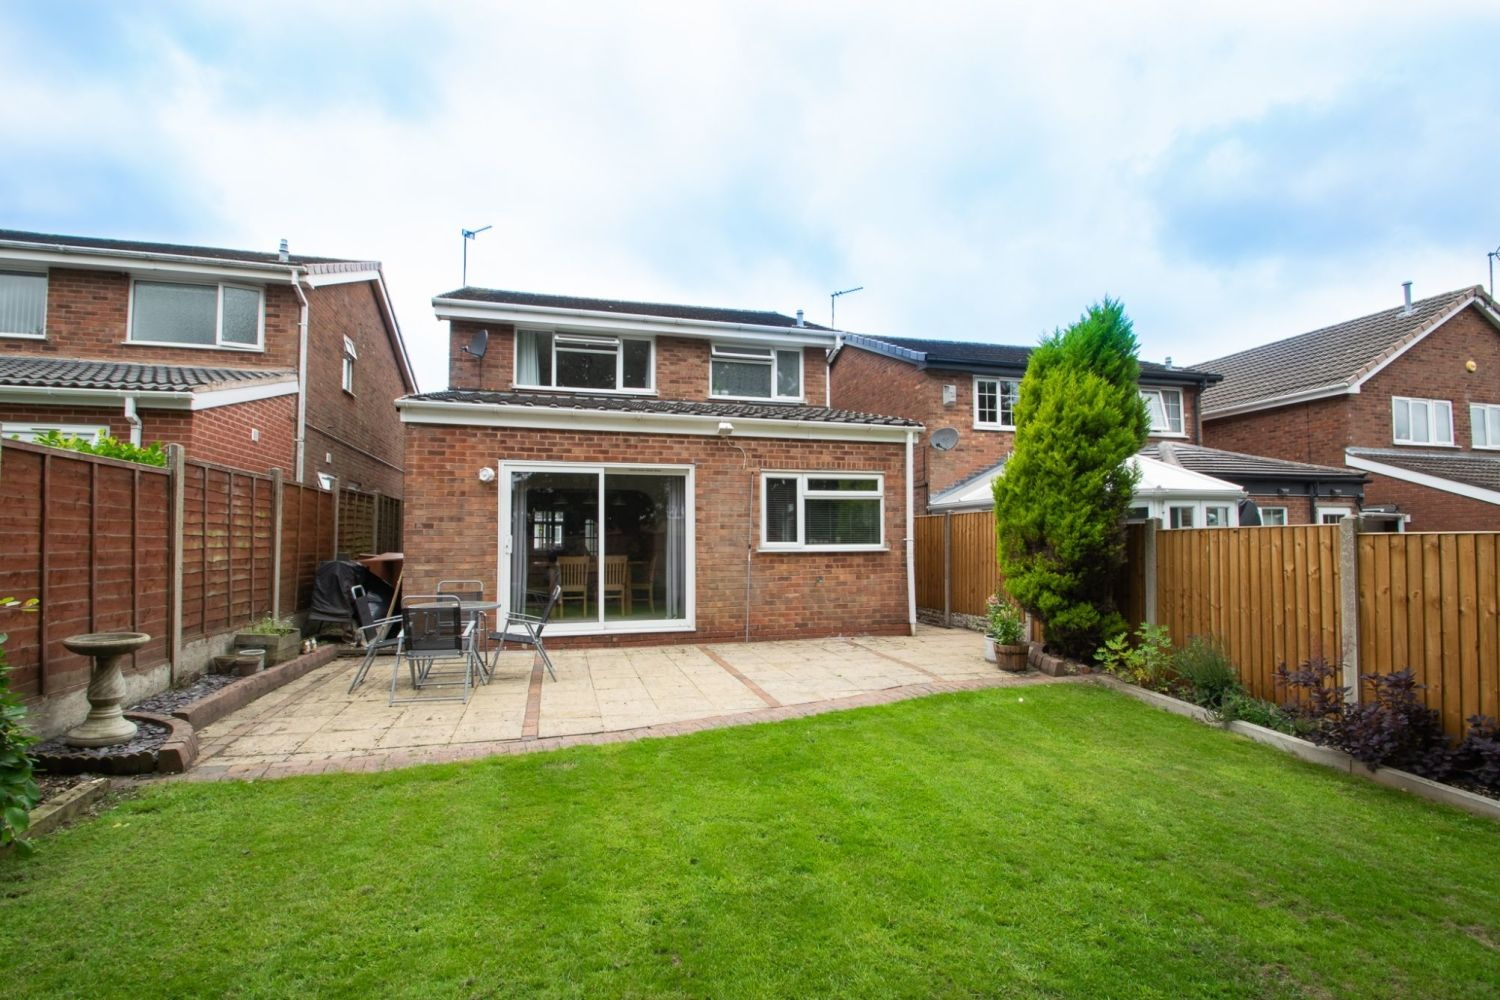 3 bed detached for sale in Clyde Avenue, Halesowen  - Property Image 22